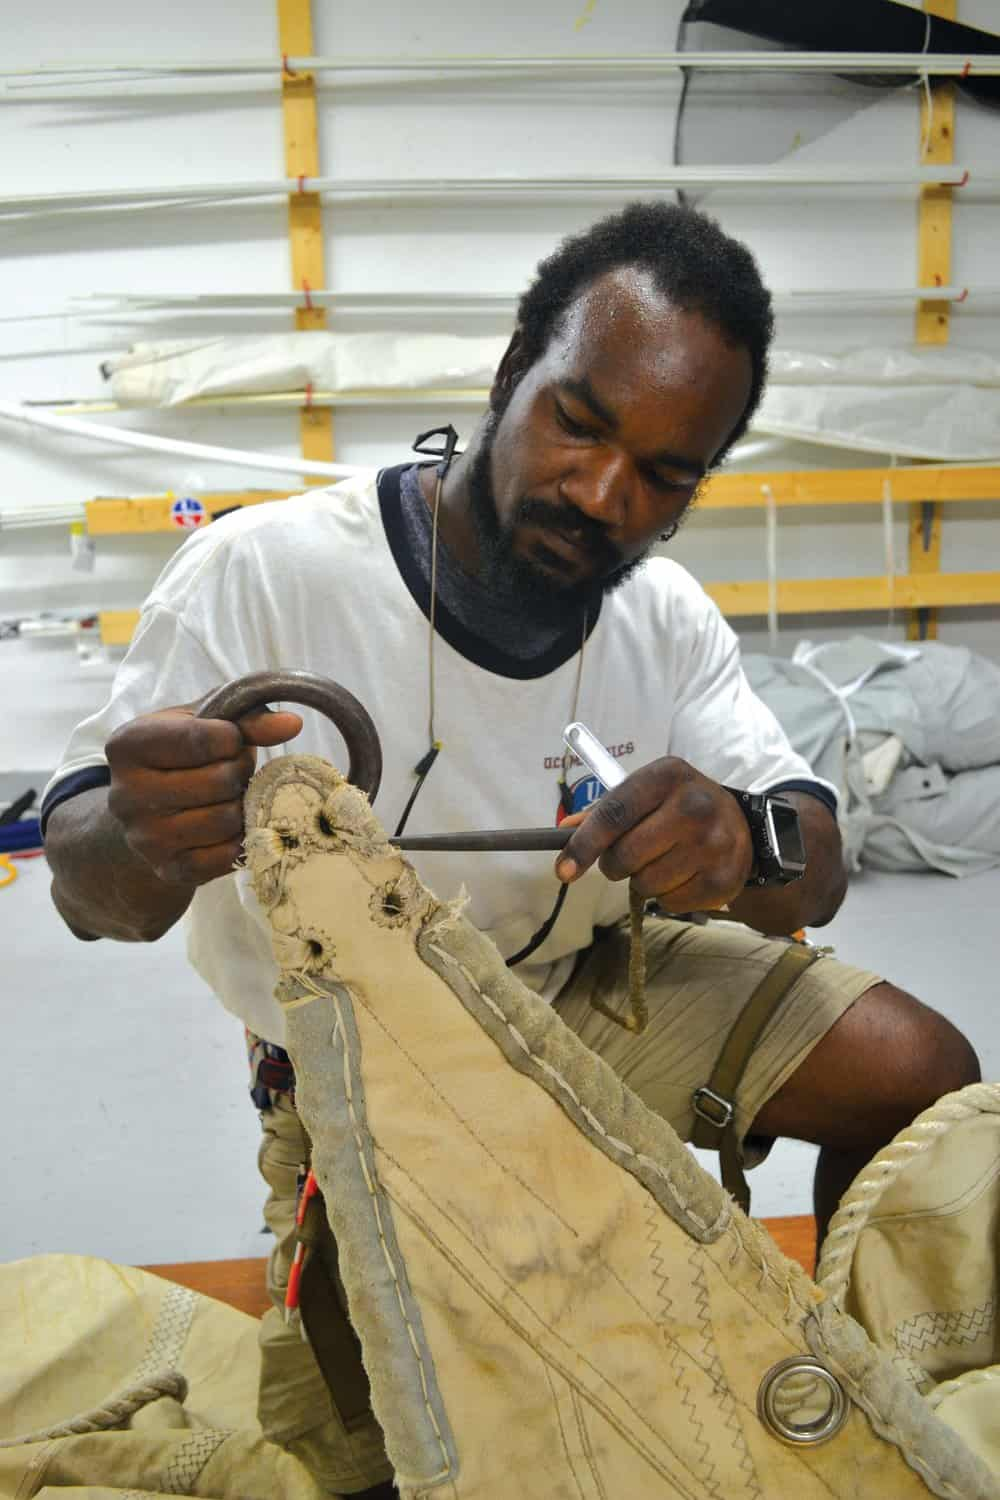 Dantes Chambre-Serres examines one of the  Eagle 's old sails.Photo by Karen Soule.